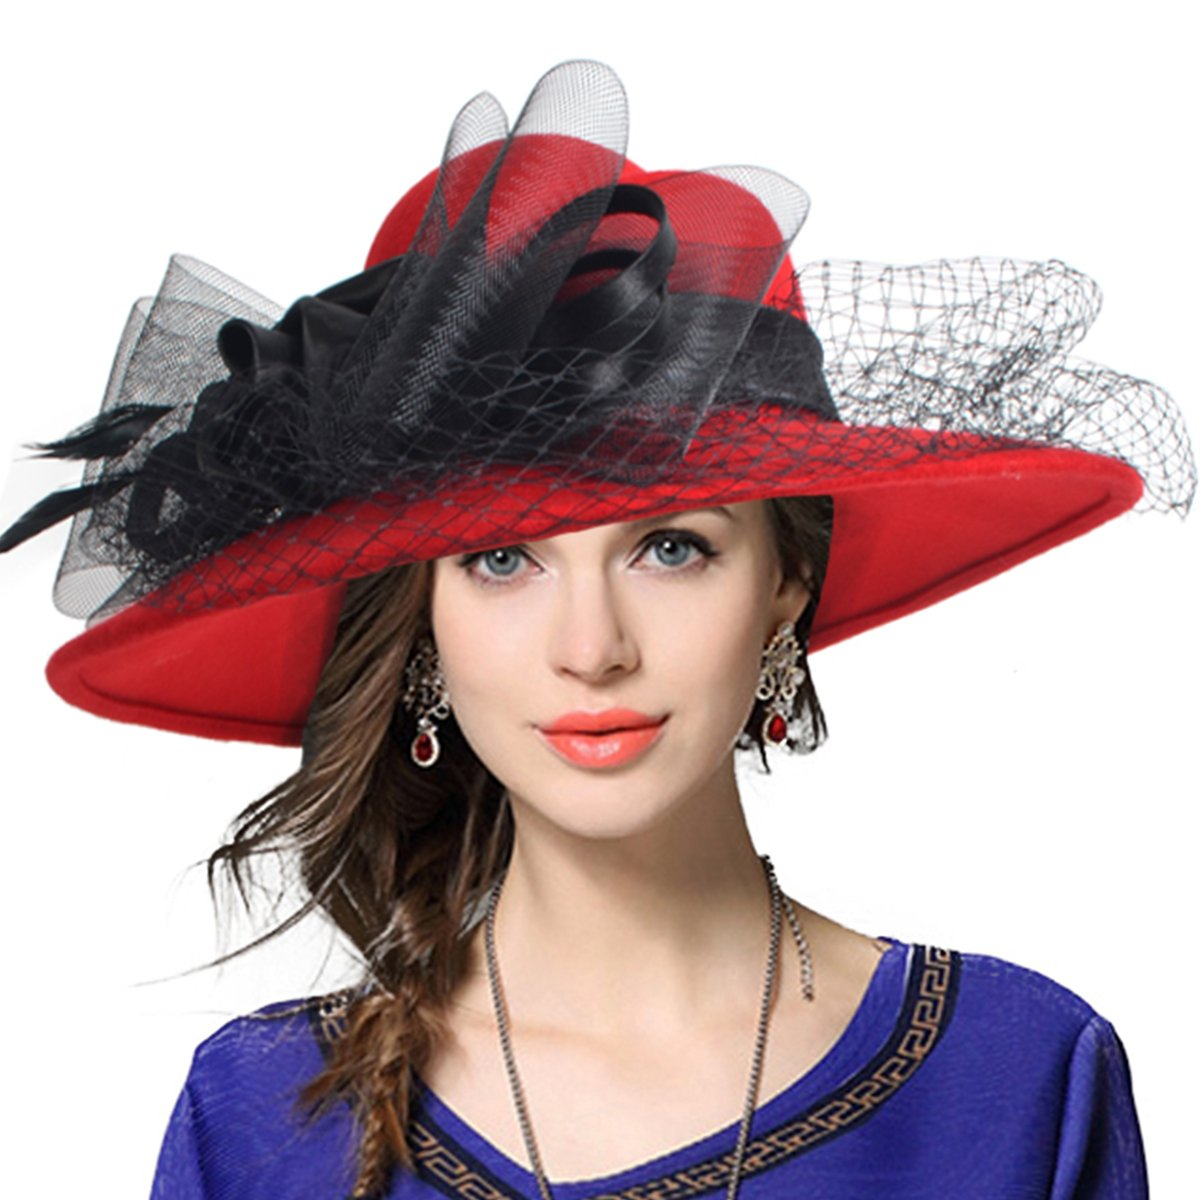 VECRY Women's Fascinator Wool Felt Hat Cocktail Party Wedding Fedora Hats (B-Red)